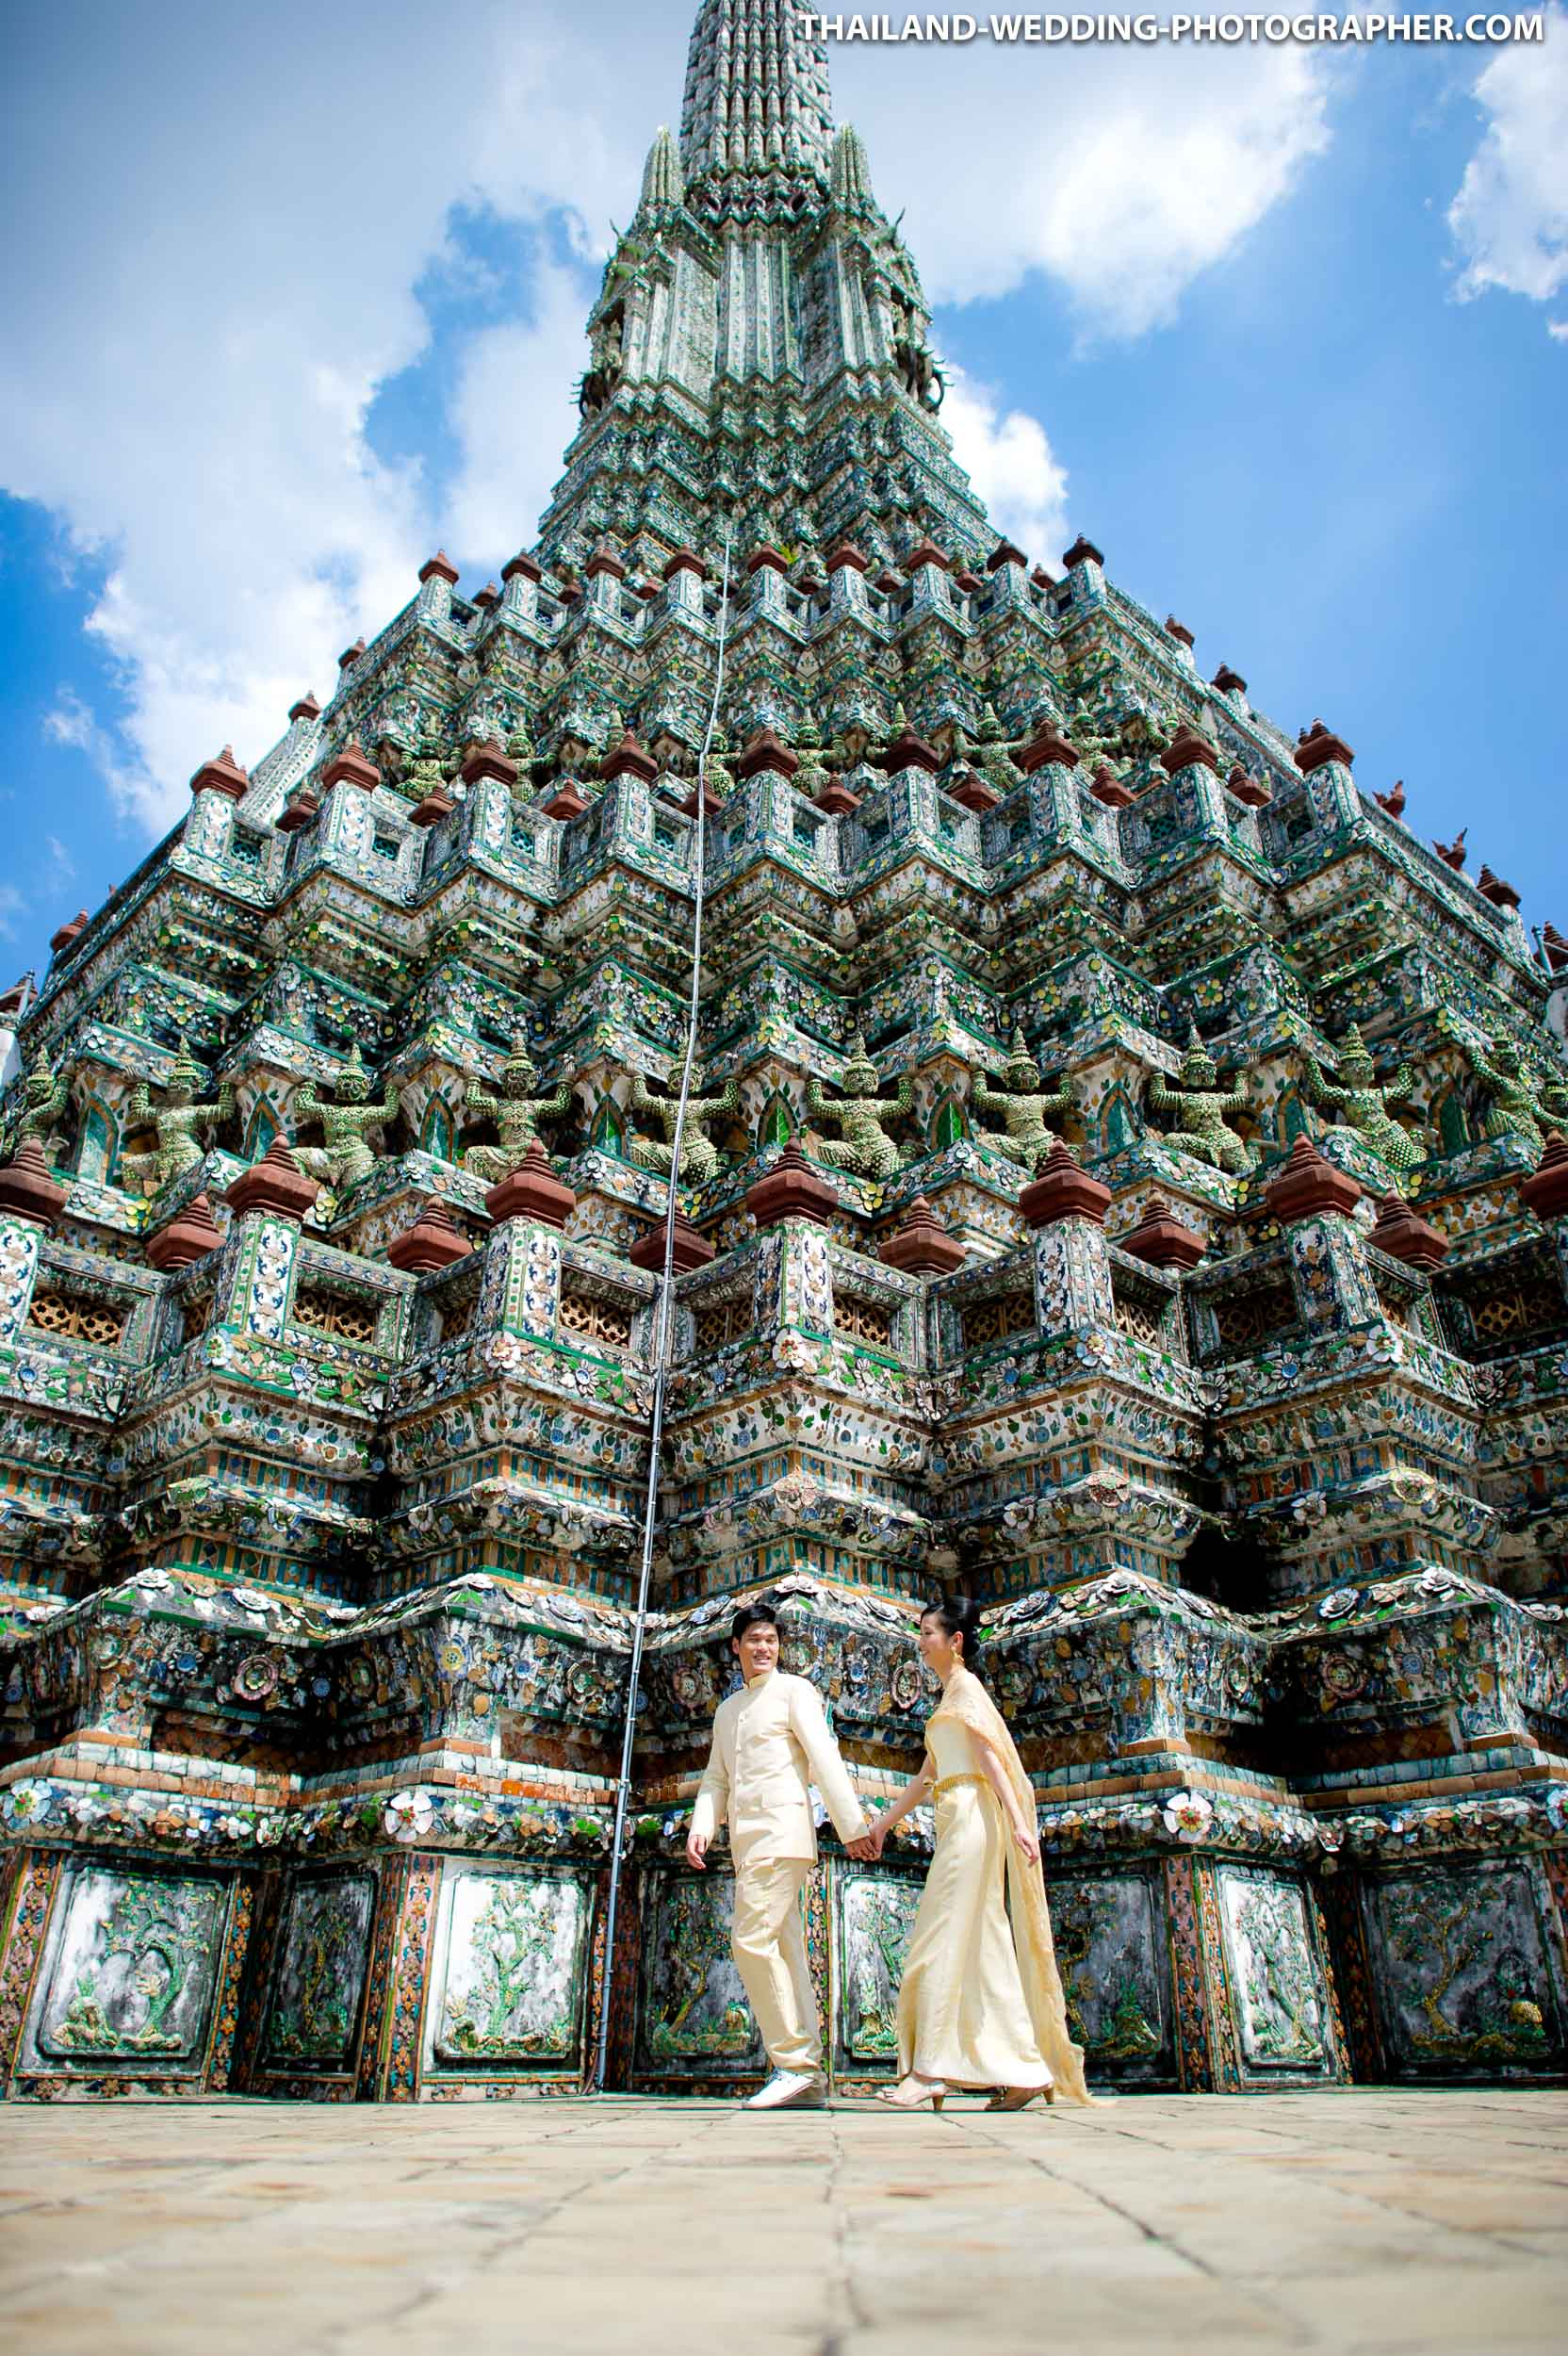 Wat Arun Bangkok Wedding Photography